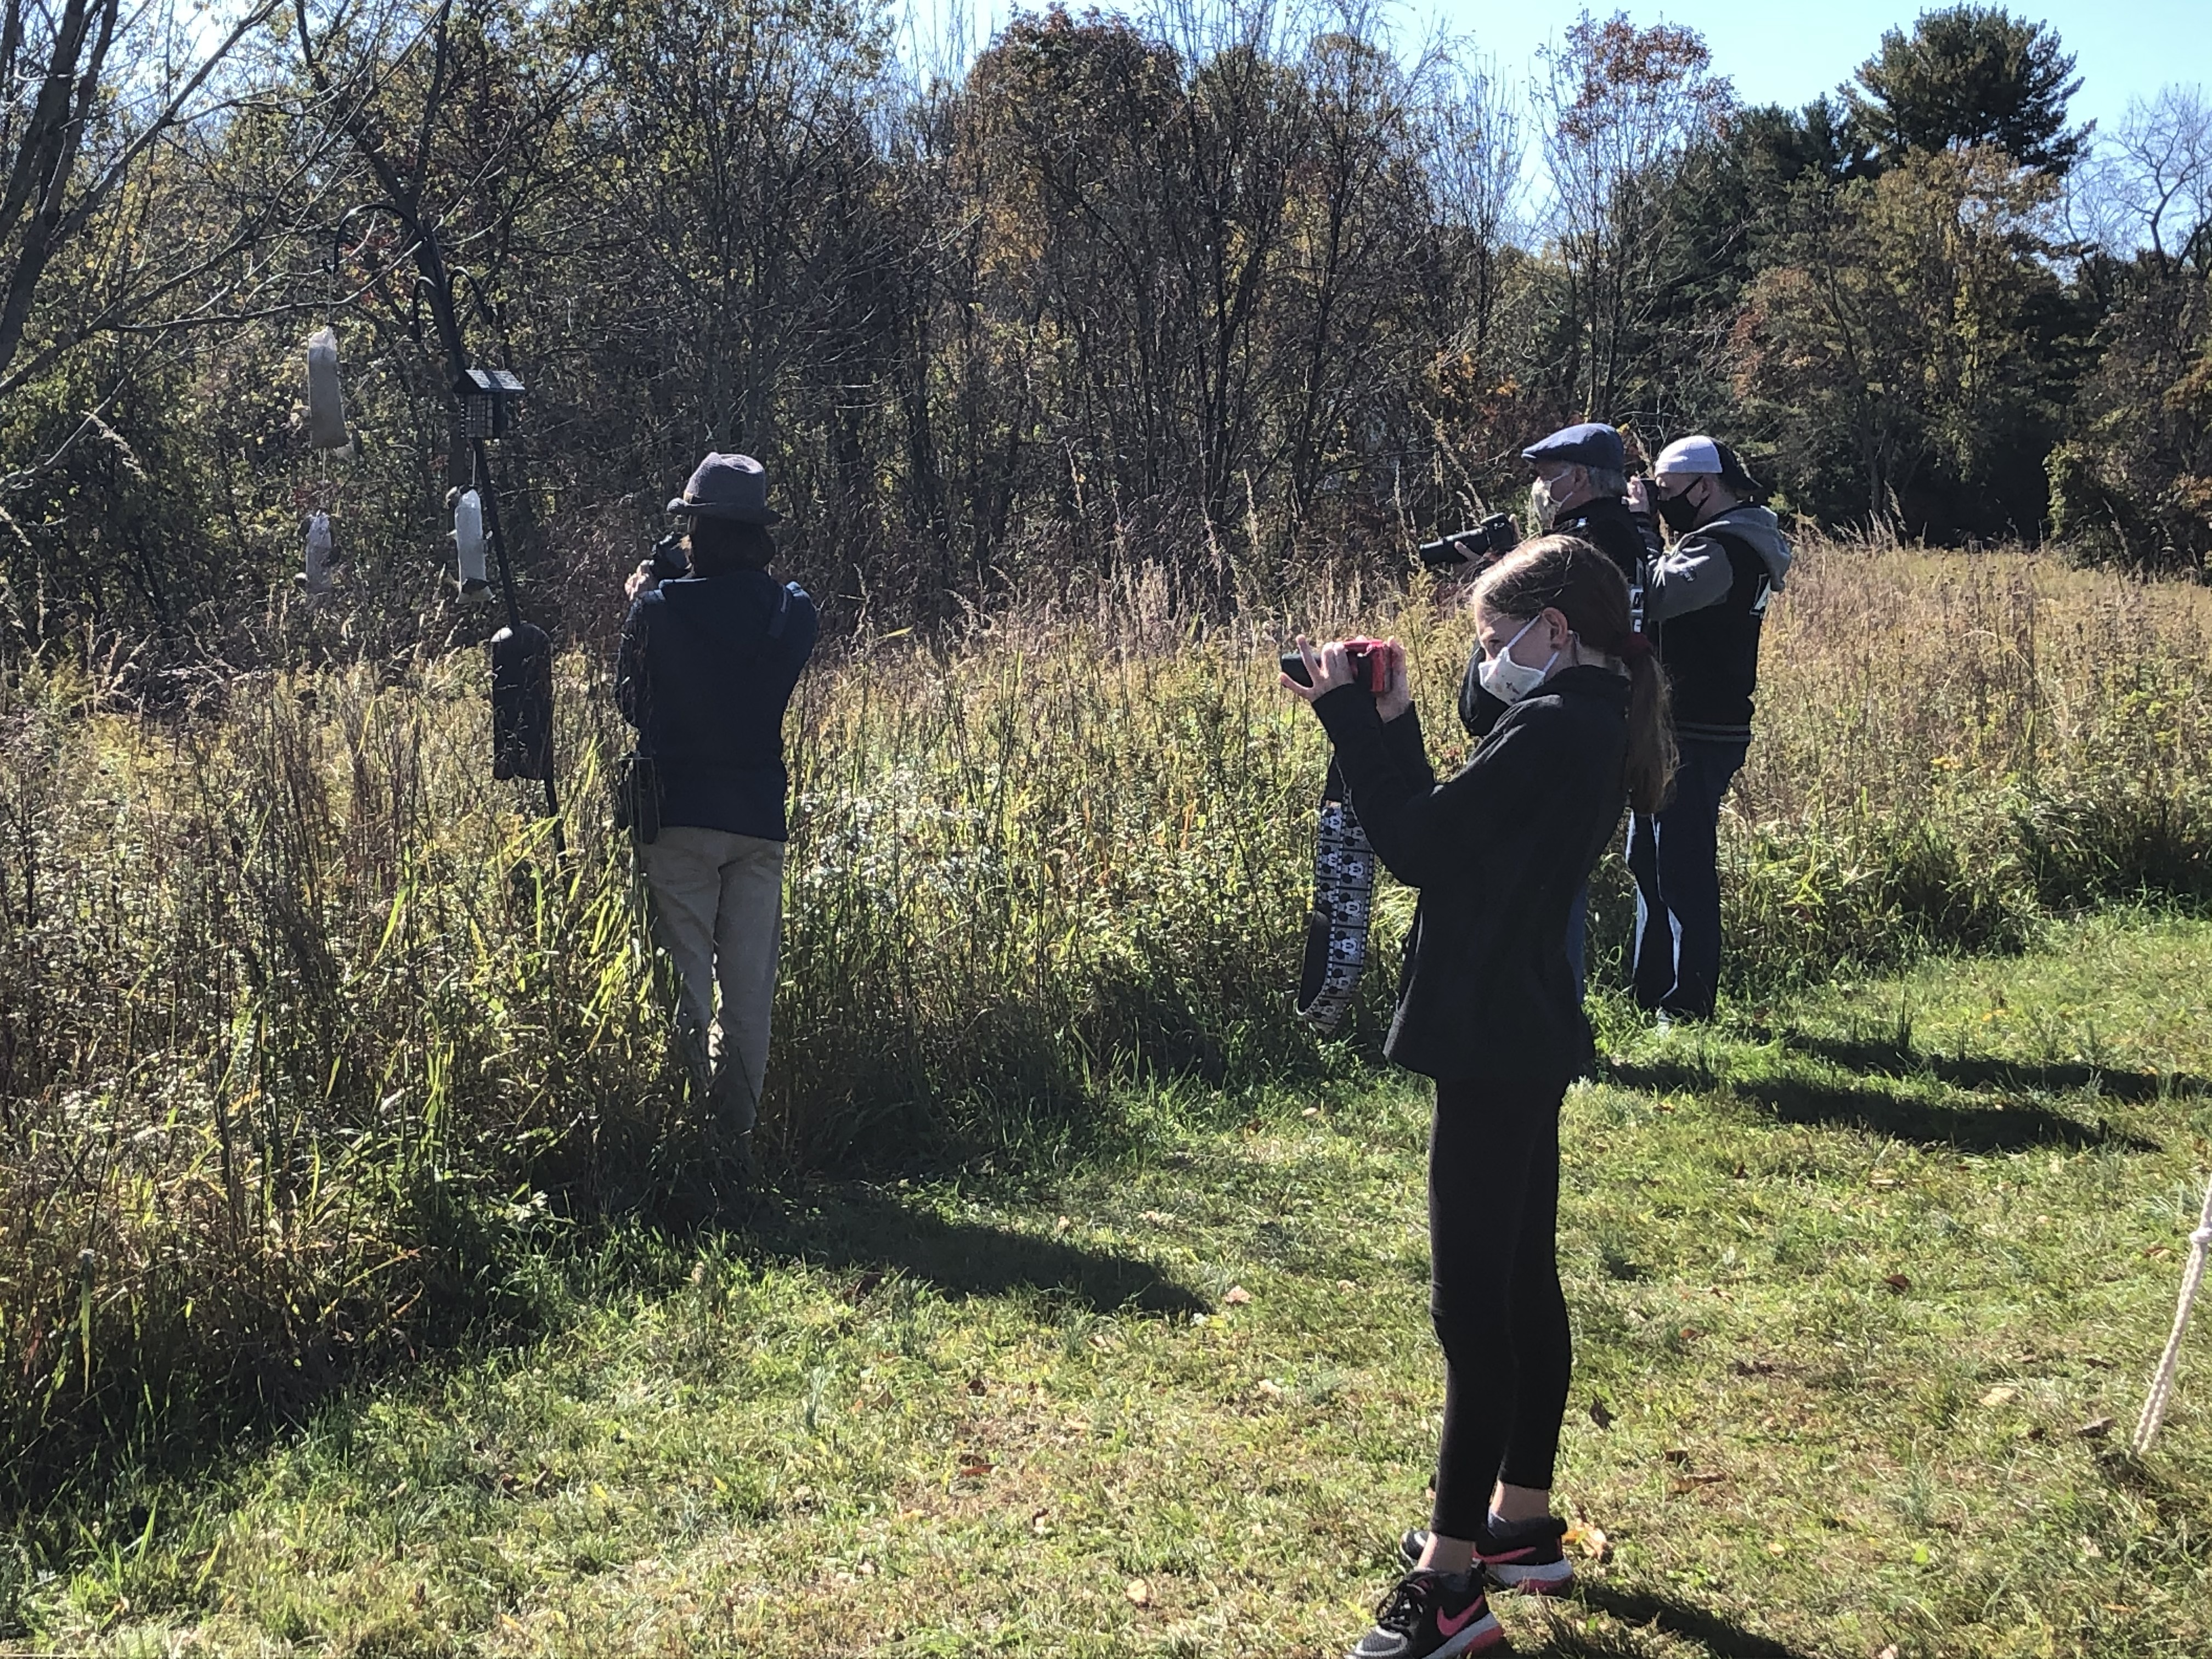 DOS Youth Birders watching some pine siskins. Participants are distanced and wearing masks.